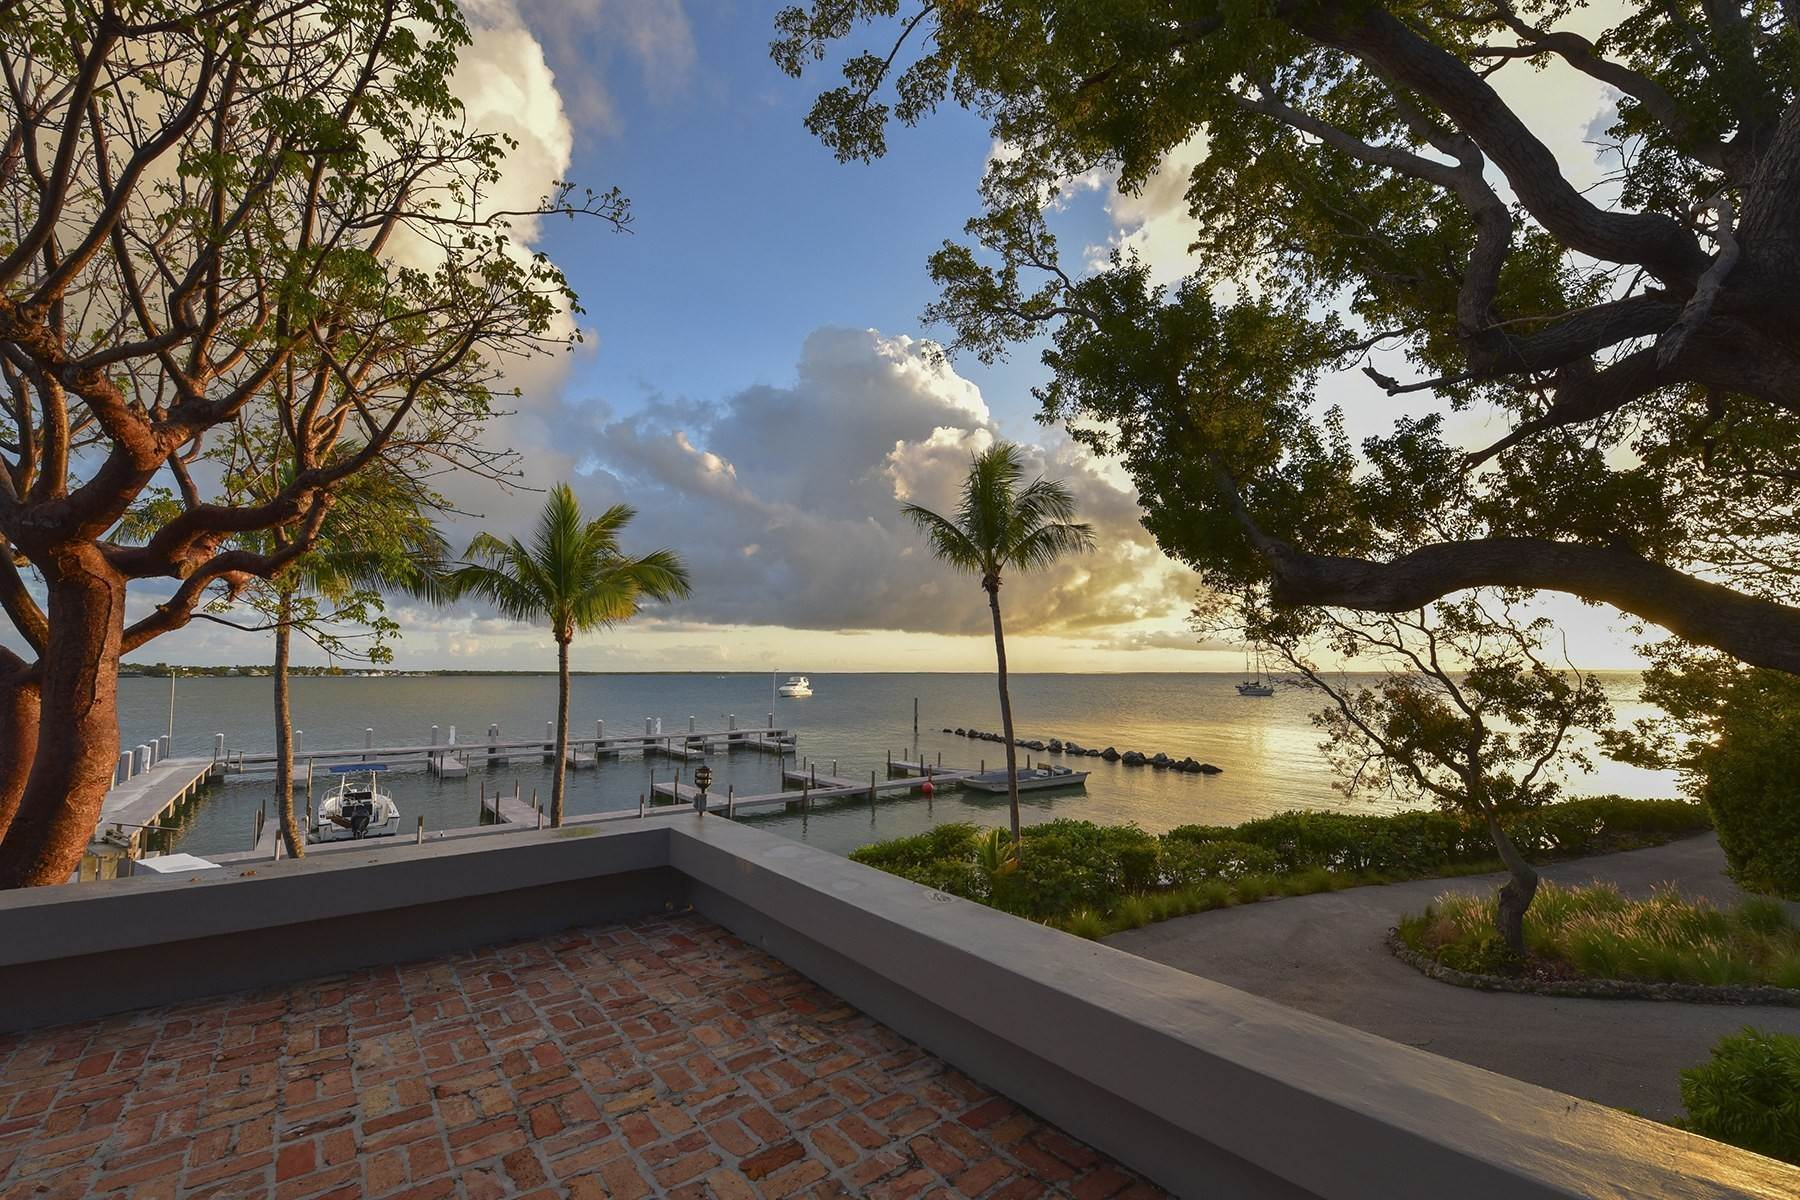 4. Property for Sale at Pumpkin Key - Private Island, Key Largo, FL Key Largo, Florida 33037 United States